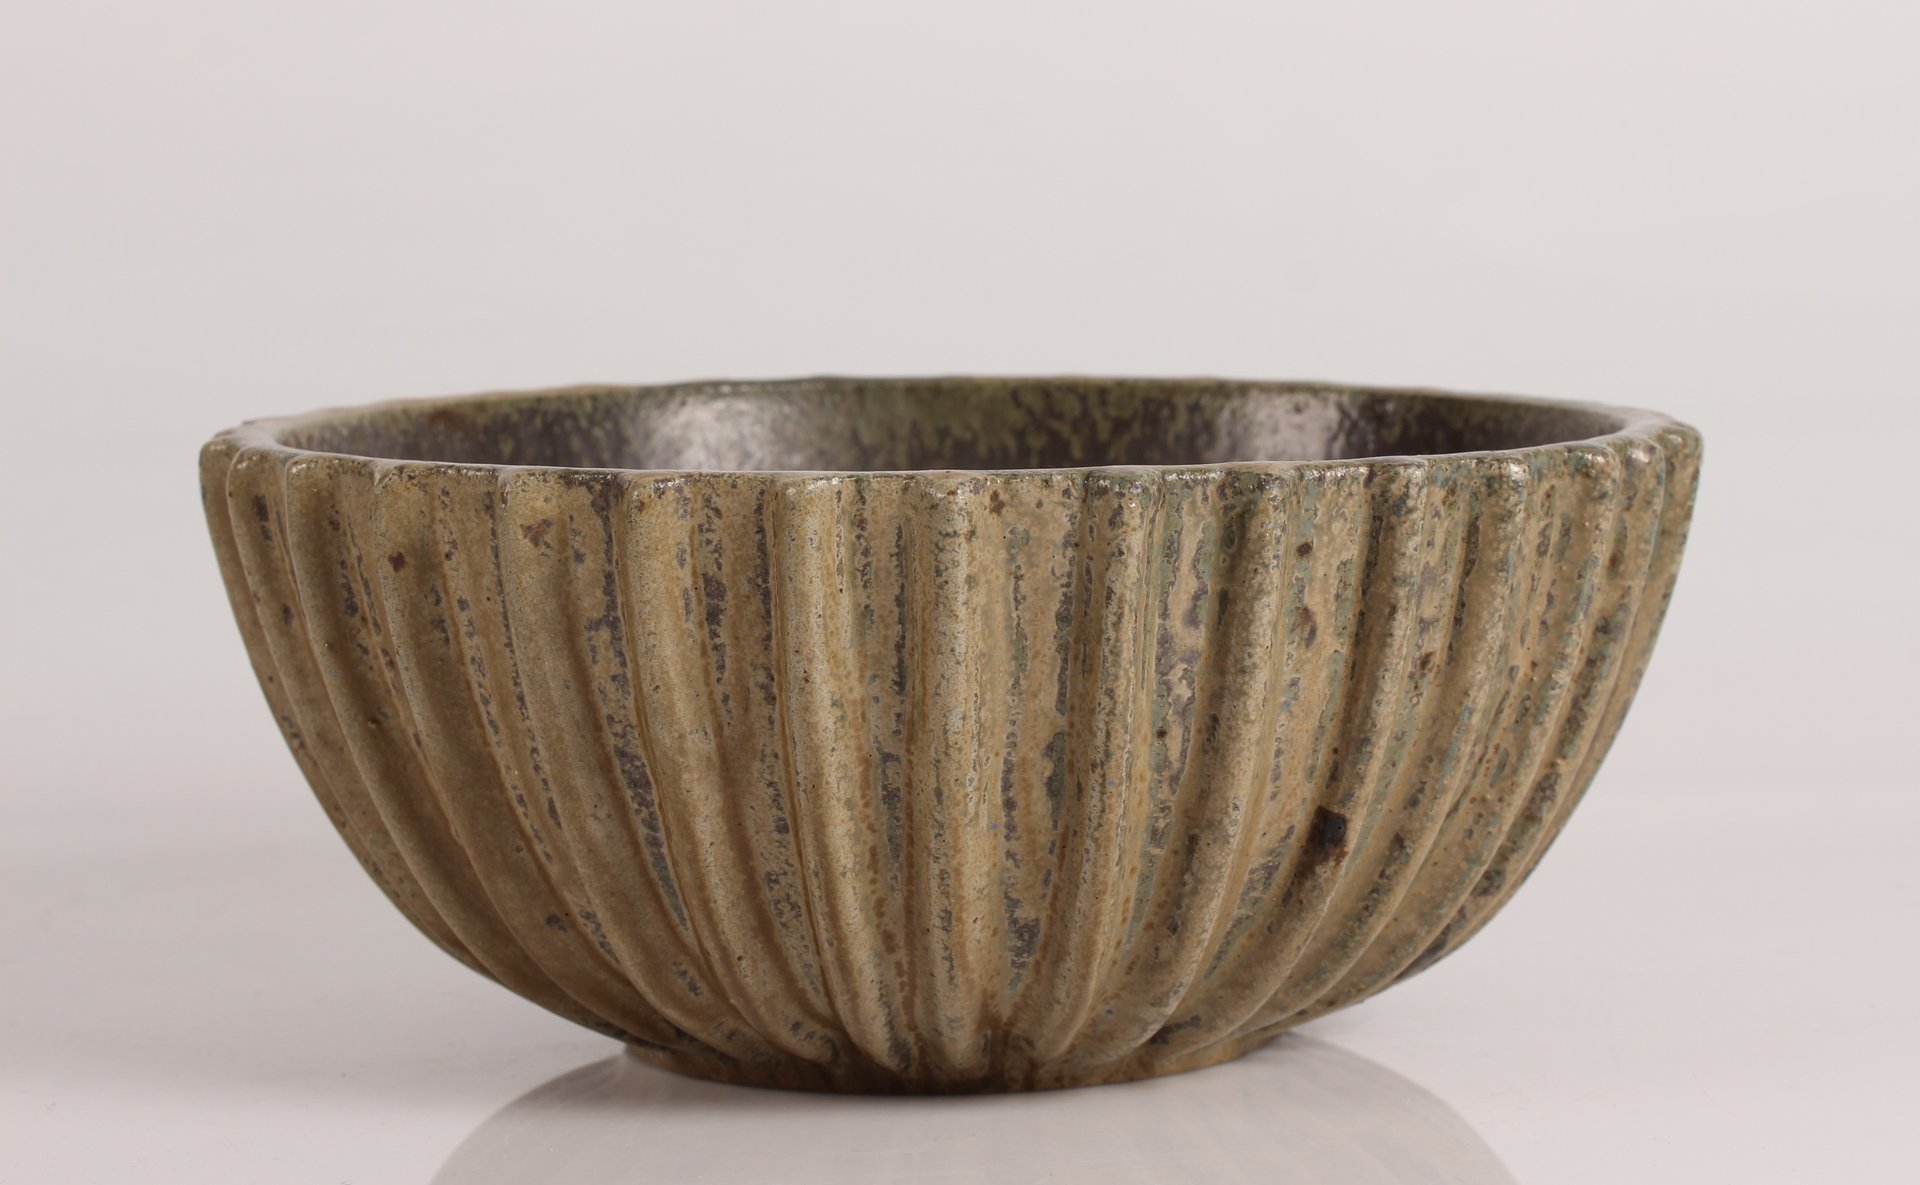 Art Deco Large Danish Ceramic Bowl by Arne Bang 1930s & Art Deco Large Danish Ceramic Bowl by Arne Bang 1930s for sale at ...